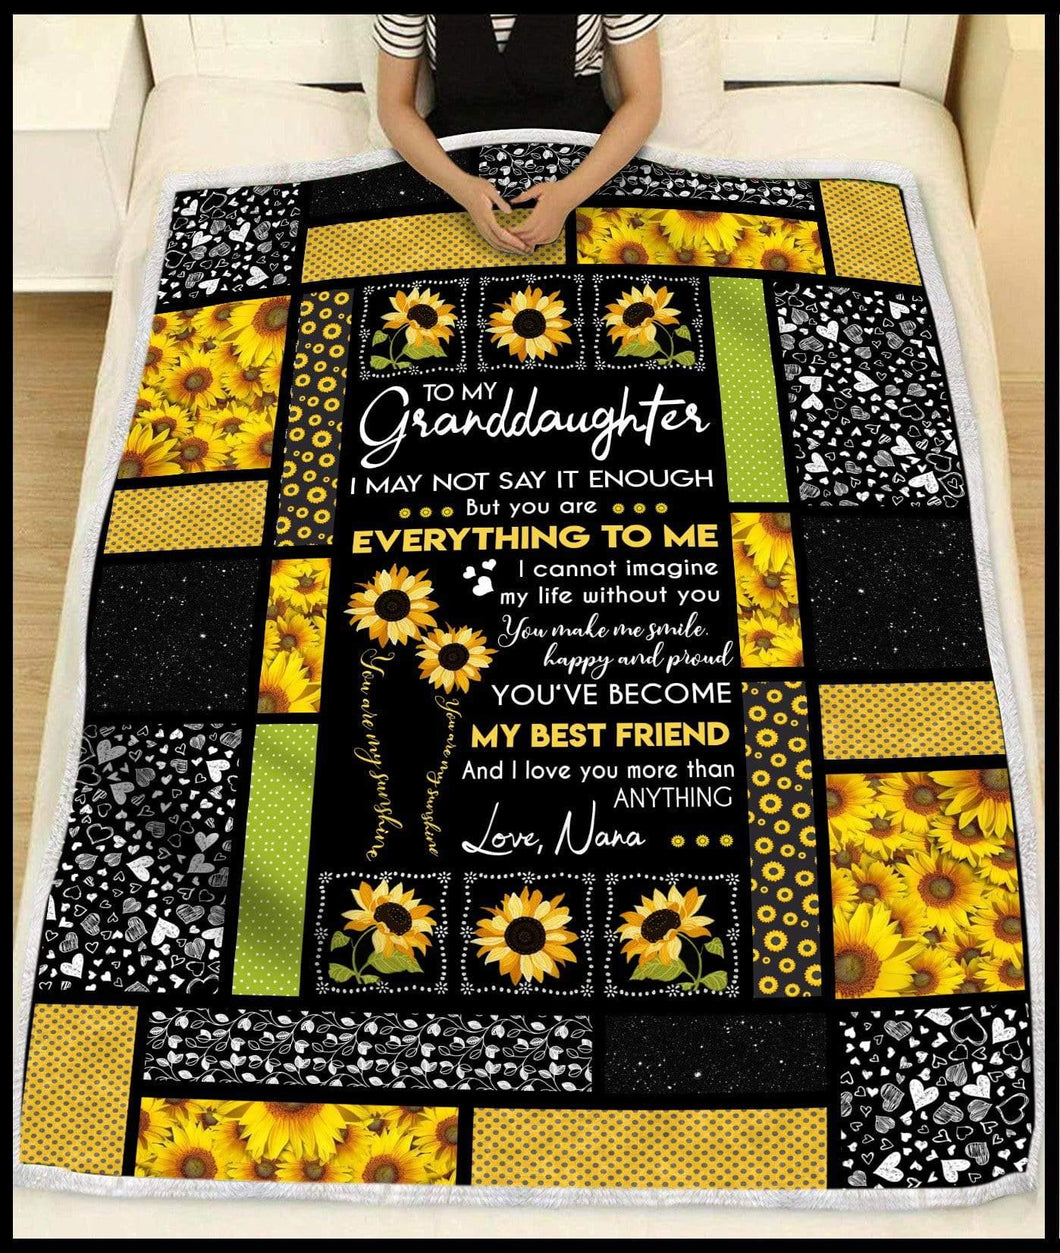 Blanket To My Granddaughter My best friend (nana) - Zalooo.com Custom Wall Art Canvas